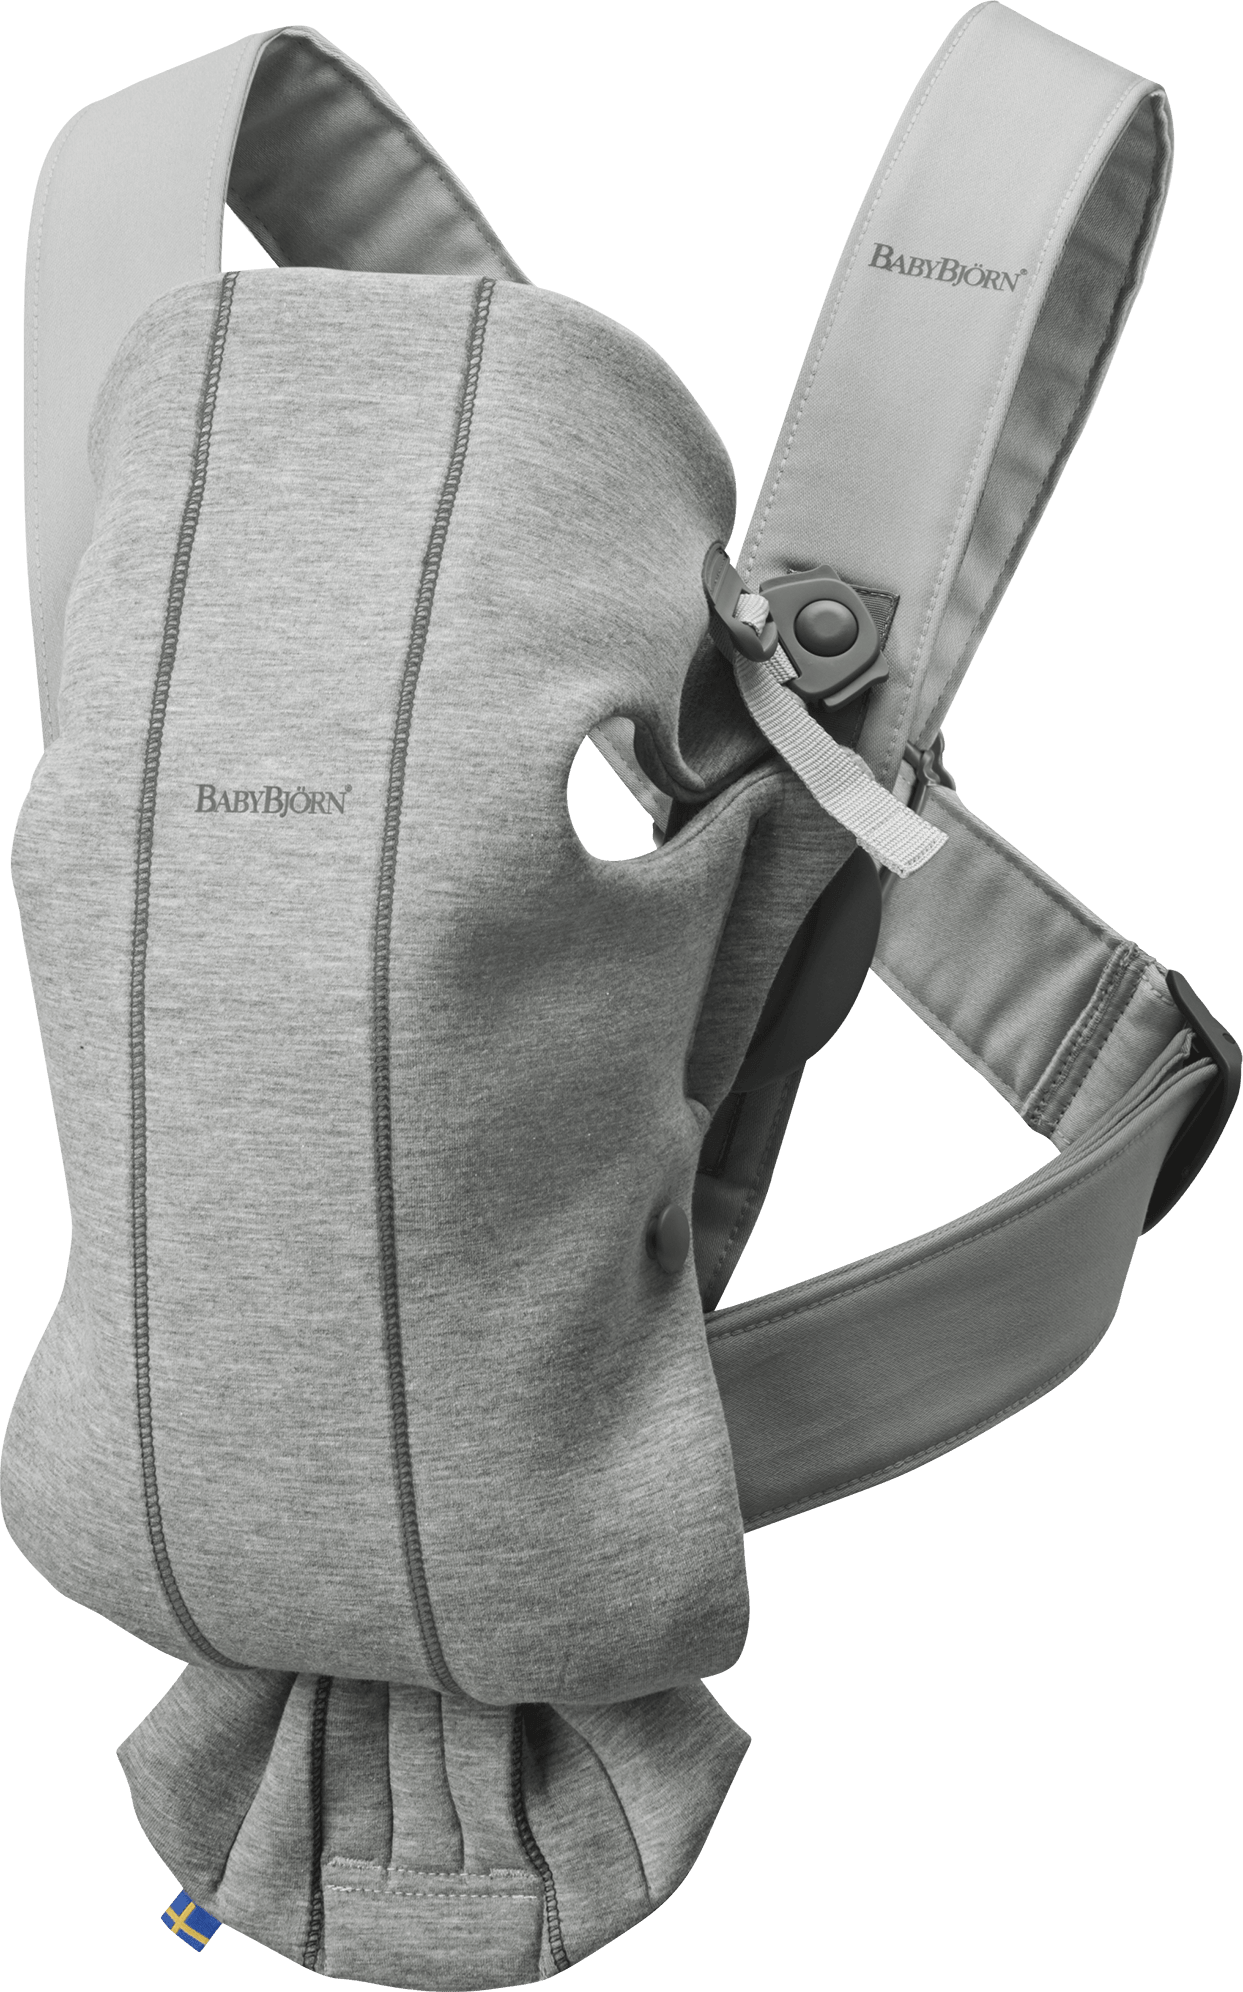 BABYBJÖRN Baby Carrier Mini, Light grey, 3D Jersey, perfect first baby carrier for a newborn.